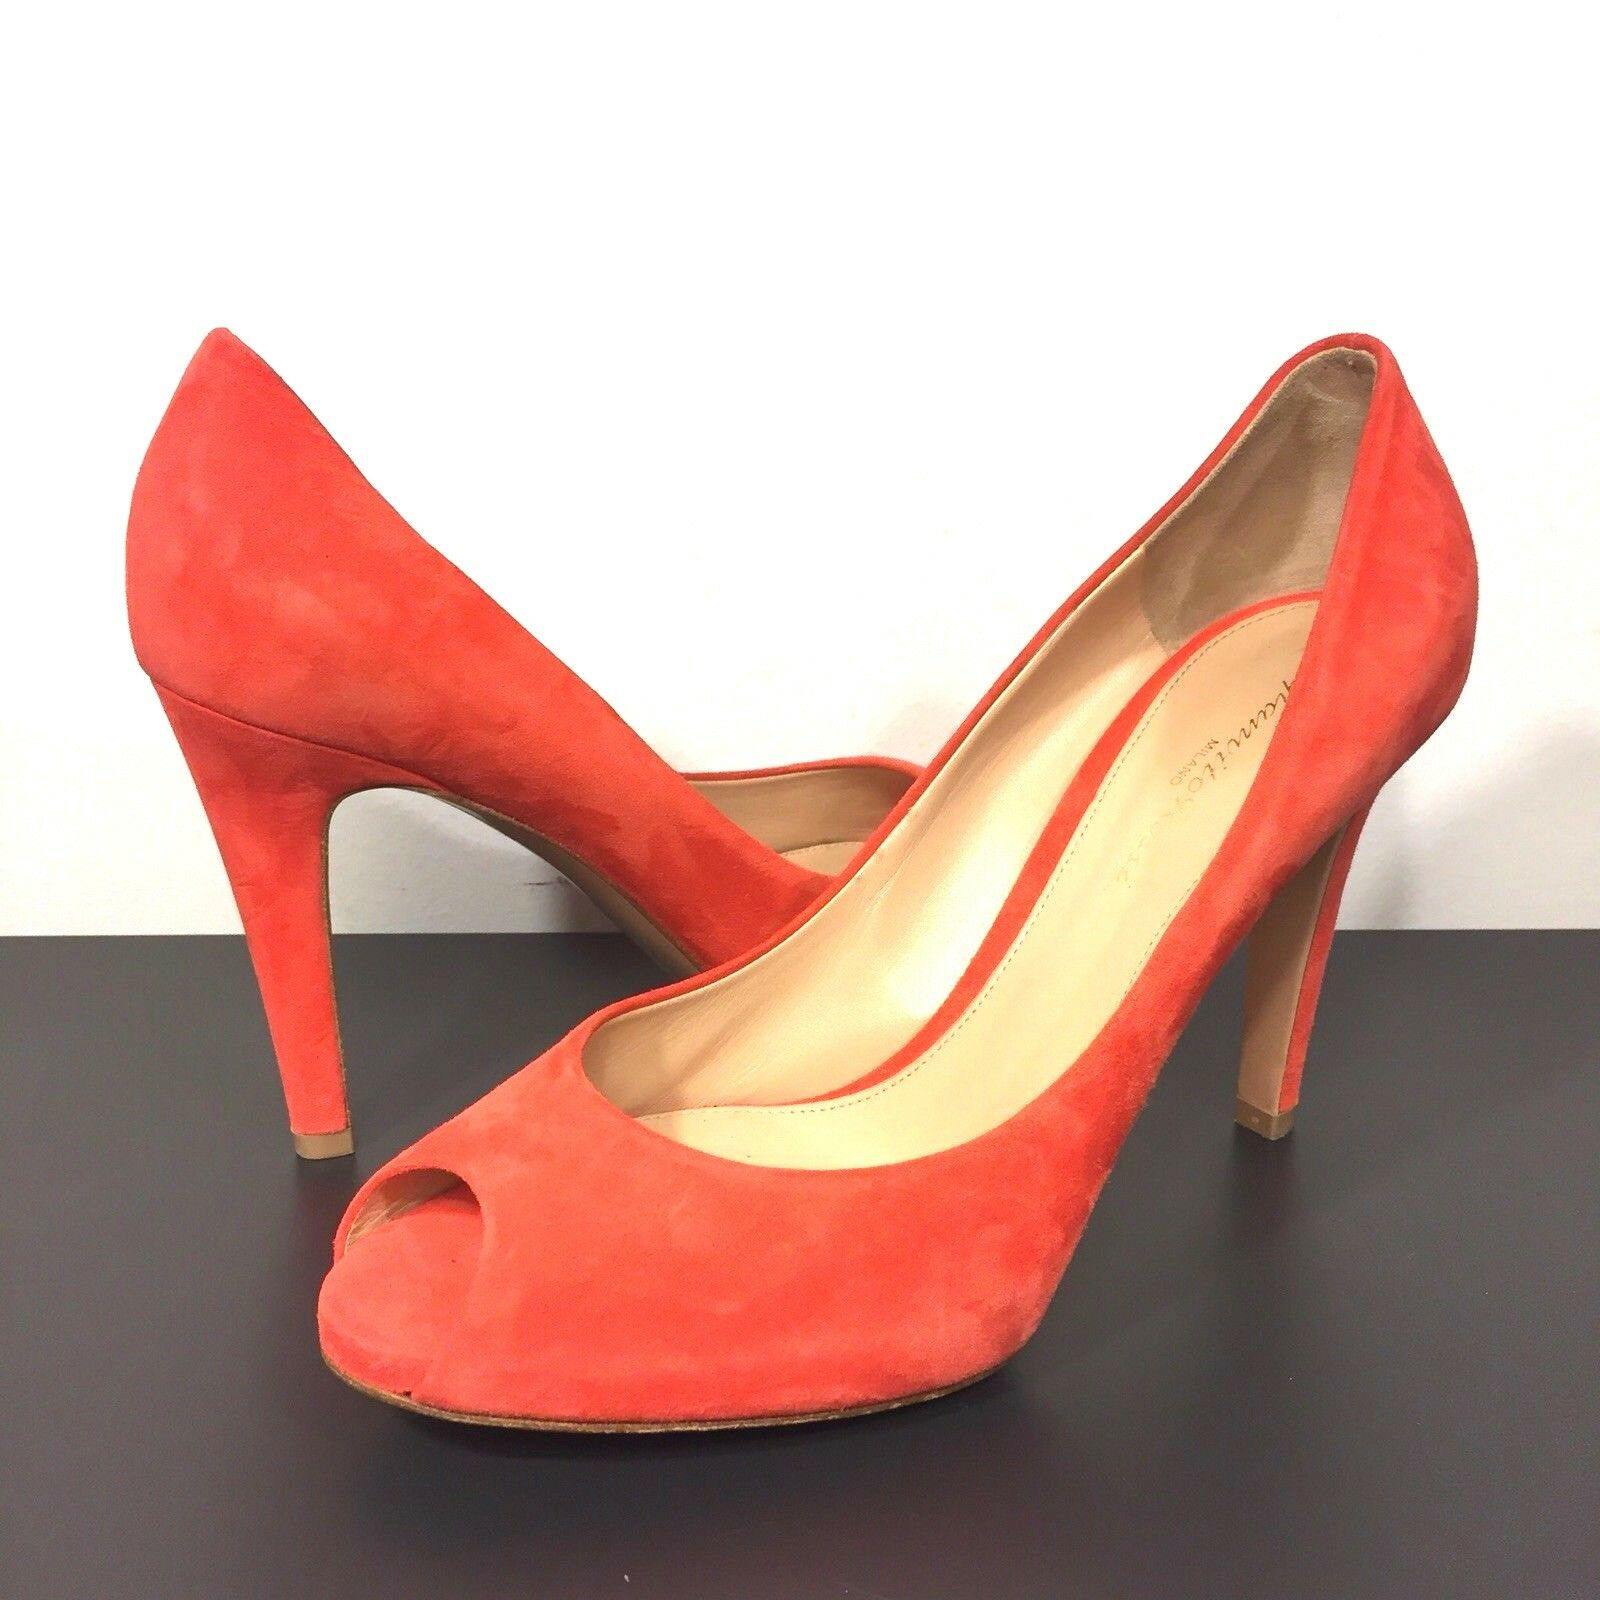 GIANVITO ROSSI Suede Leather Peep Toe Pump Heels Red orange Size 39 (MSRP  795)